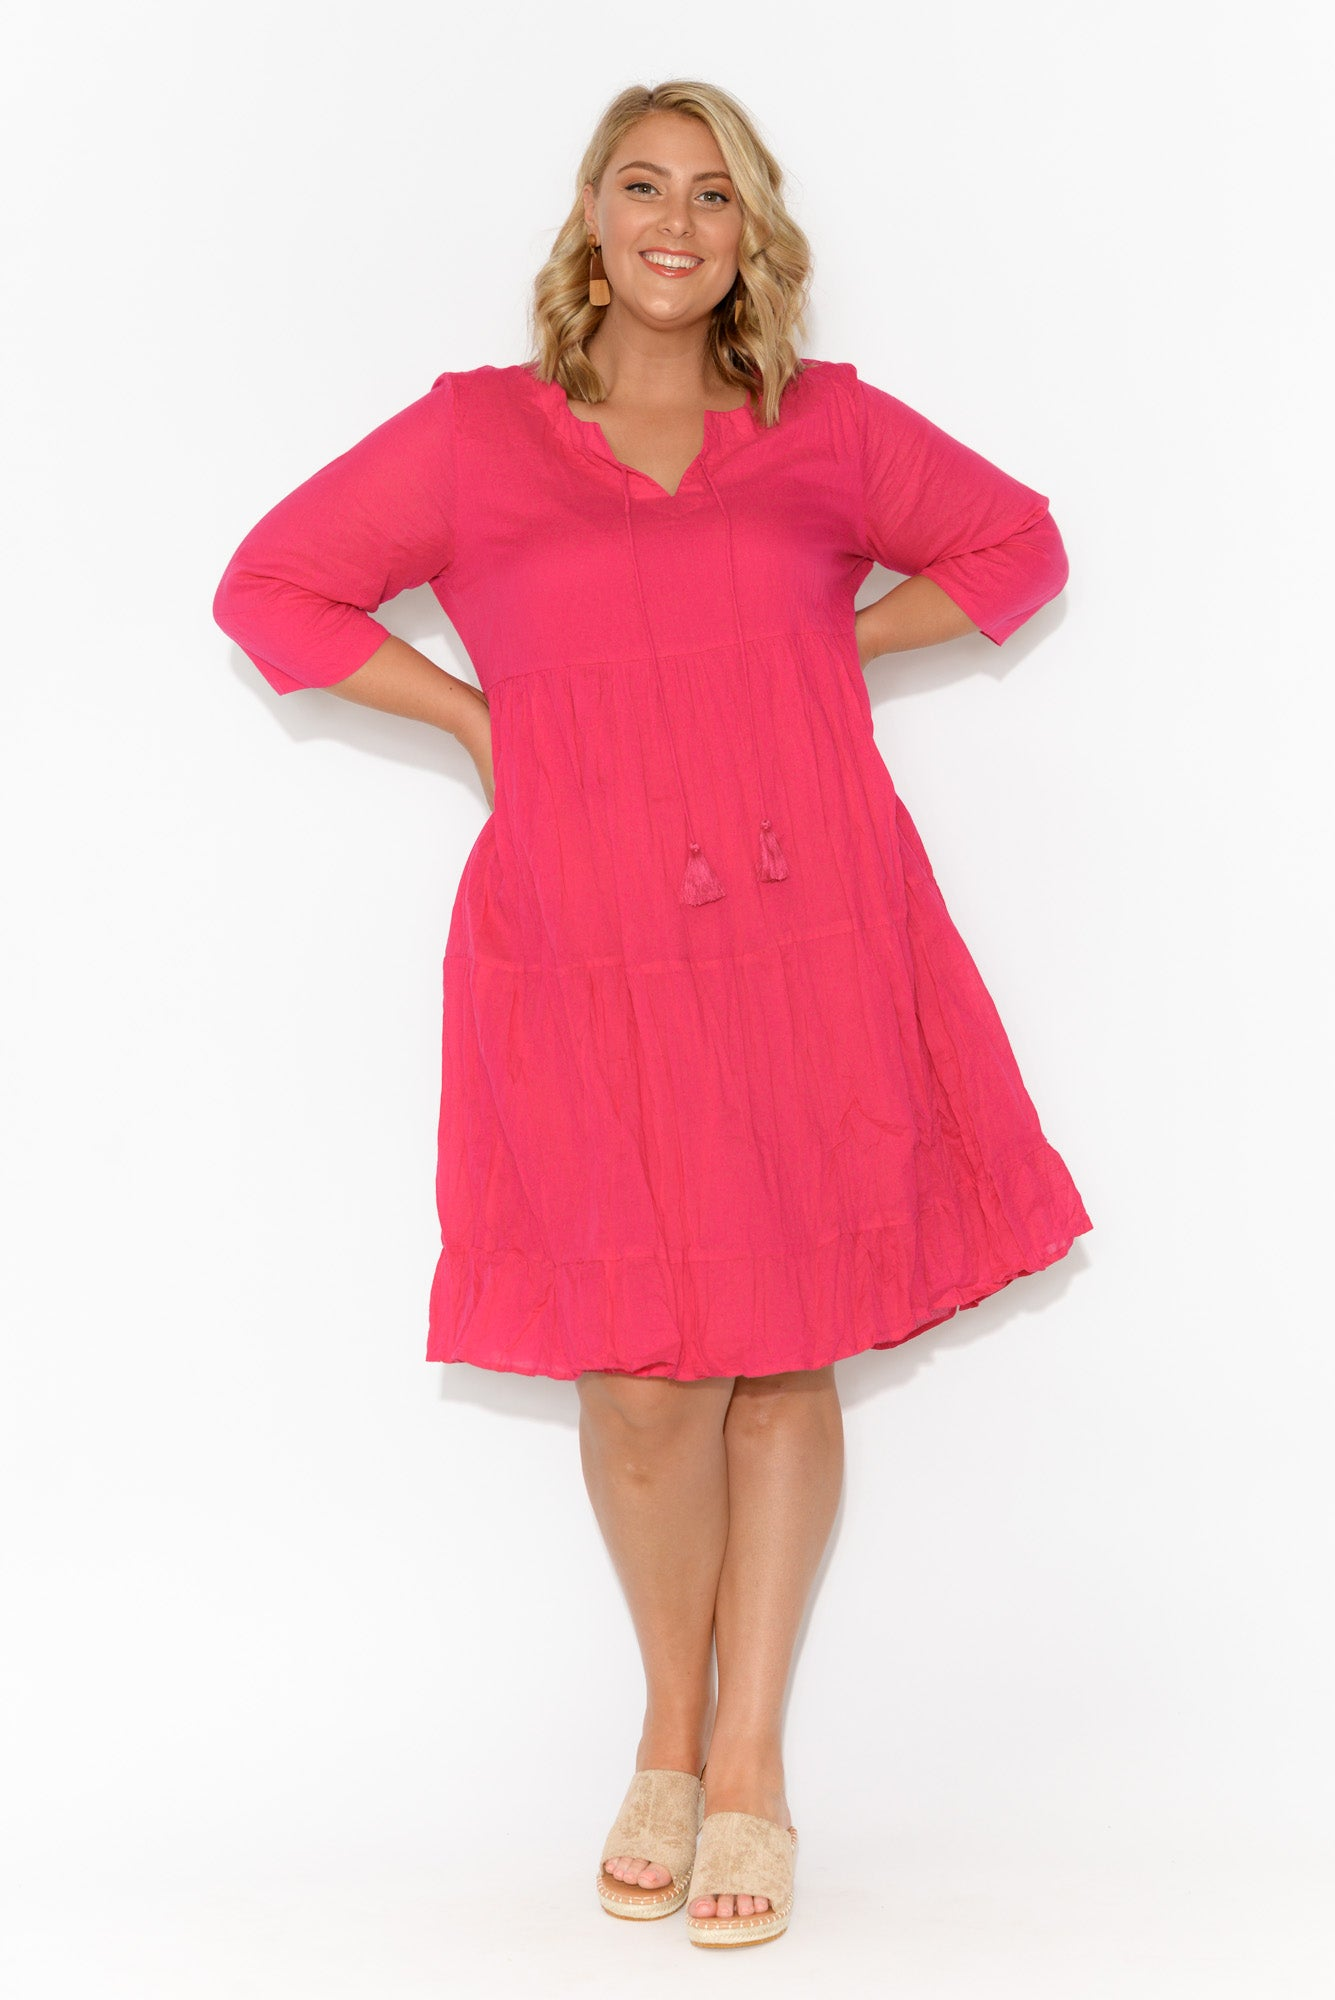 Milana Pink Crinkle Cotton Dress